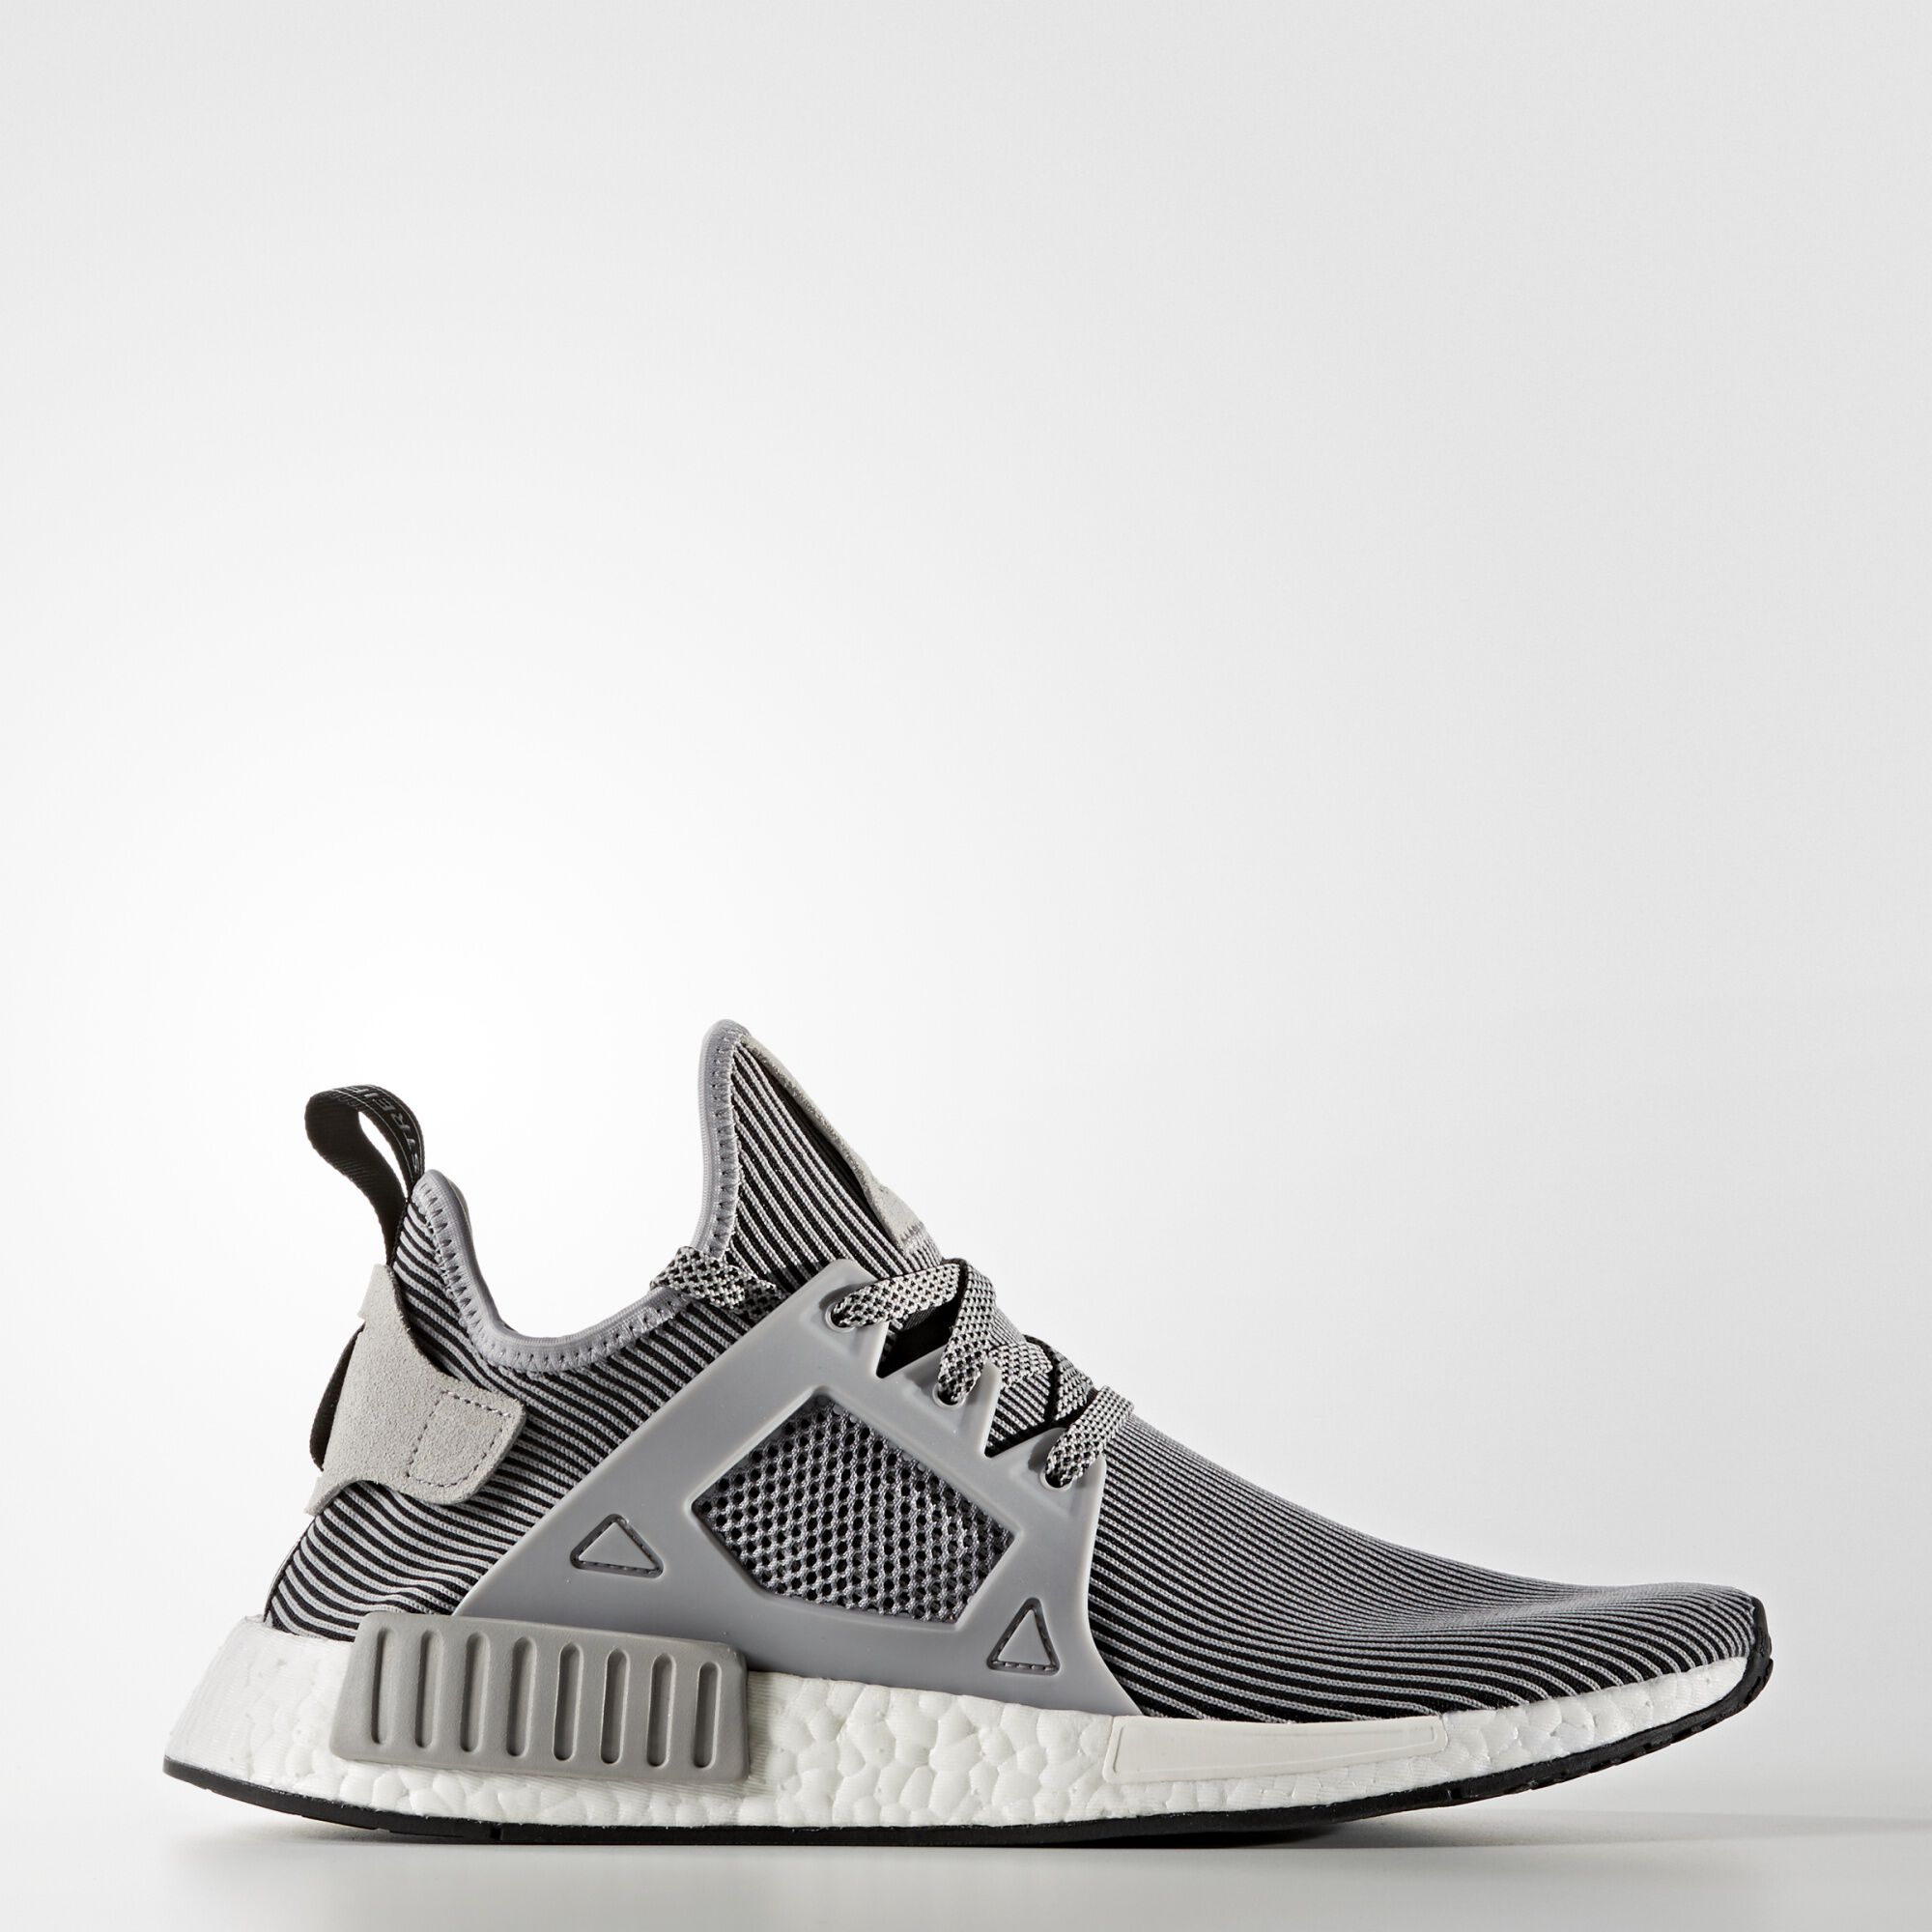 frrsjb adidas NMD Shoes - R1, R2, XR1 NMDs and More | adidas US